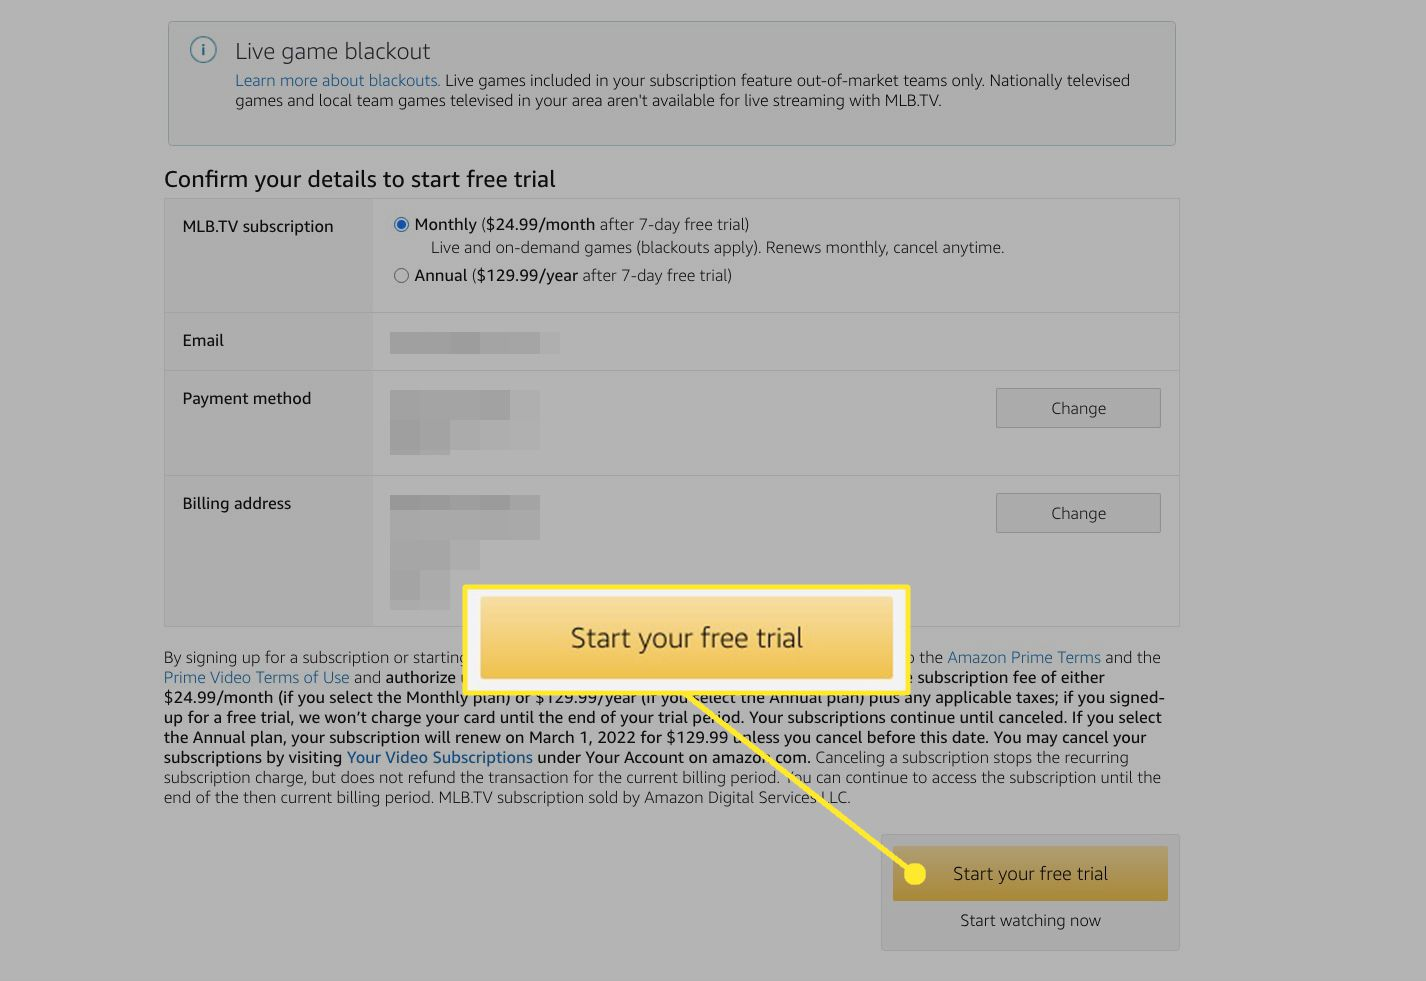 Amazon Prime Video channel subscription page with Start your free trial highlighted